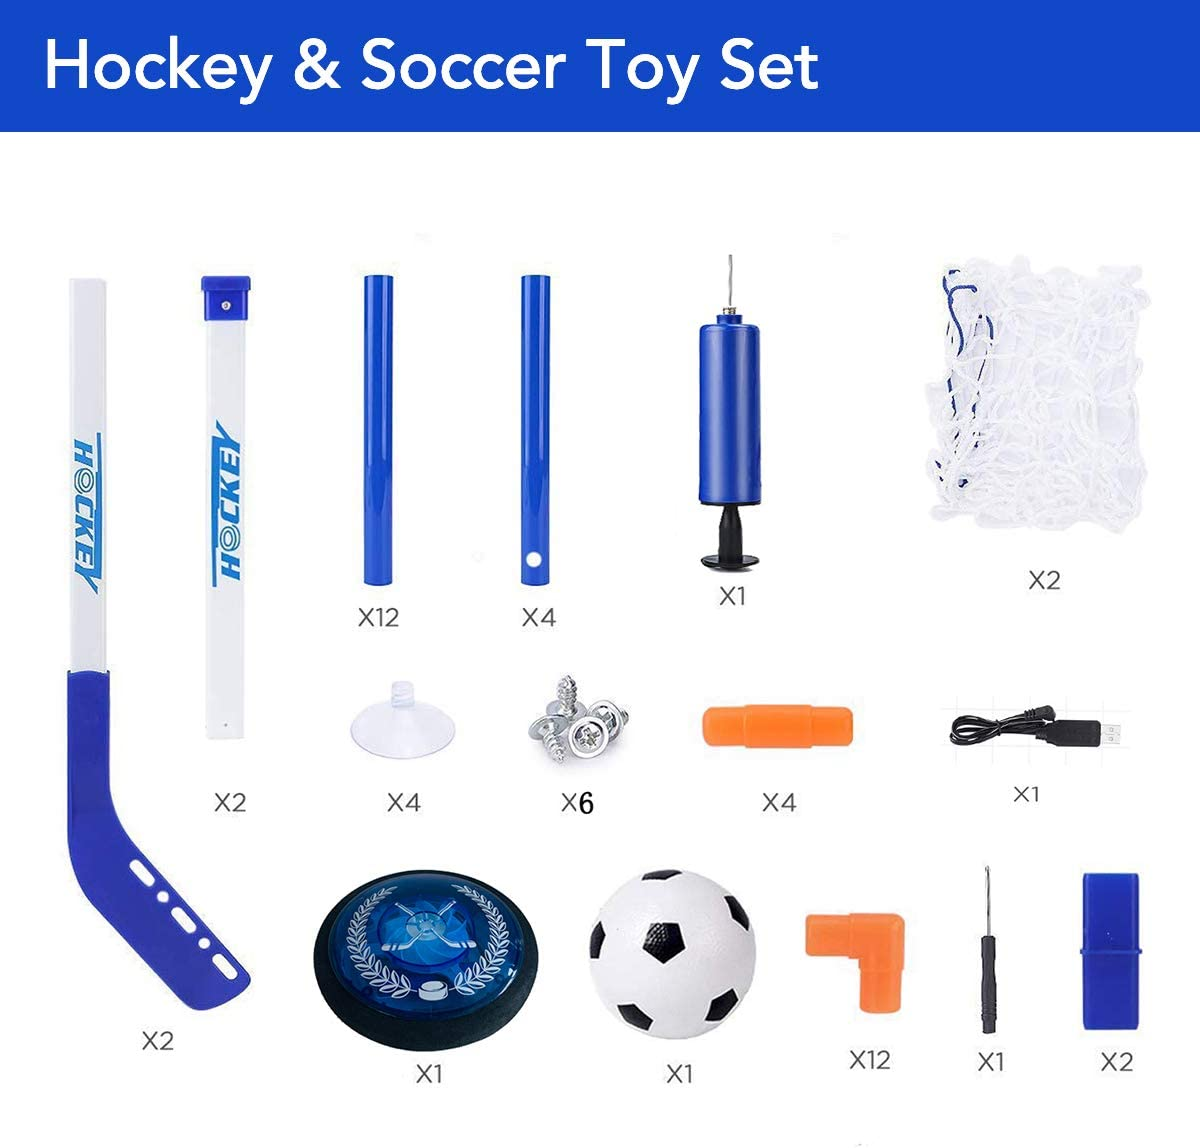 RGB Led Light Rechargeable and Battery Hockey Set for 3 4 5 6 7 8 9 10 11 12 Year Old Kids XIZECK Hockey Set Soccer Kids Toys Hockey Gift Indoor Outdoor Air Power Training Ball Playing Hockey Game